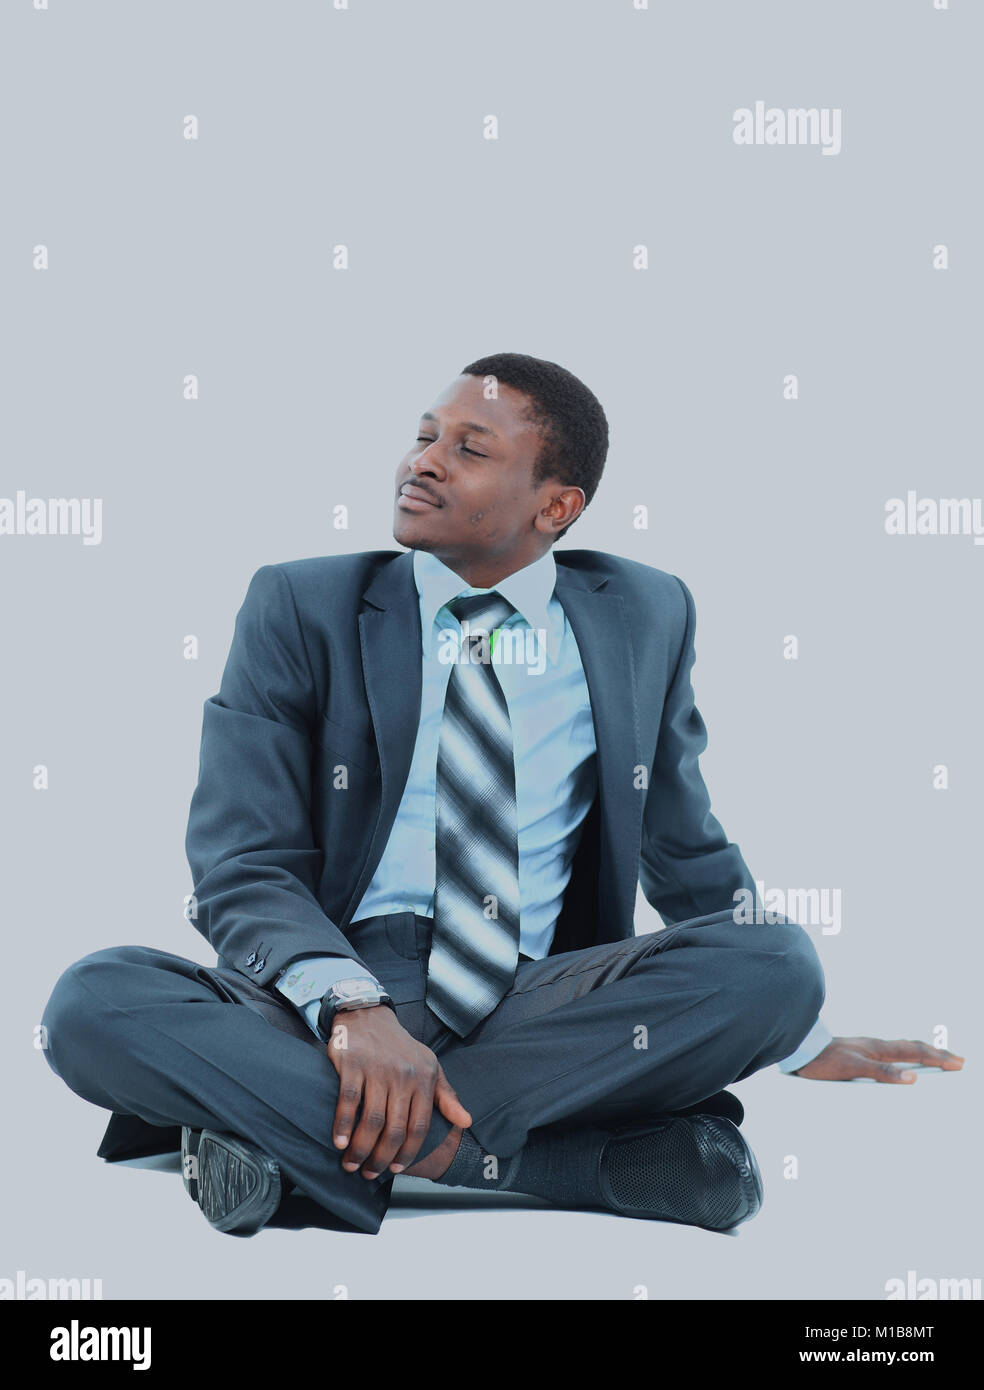 afro-american businessman relaxing. - Stock Image